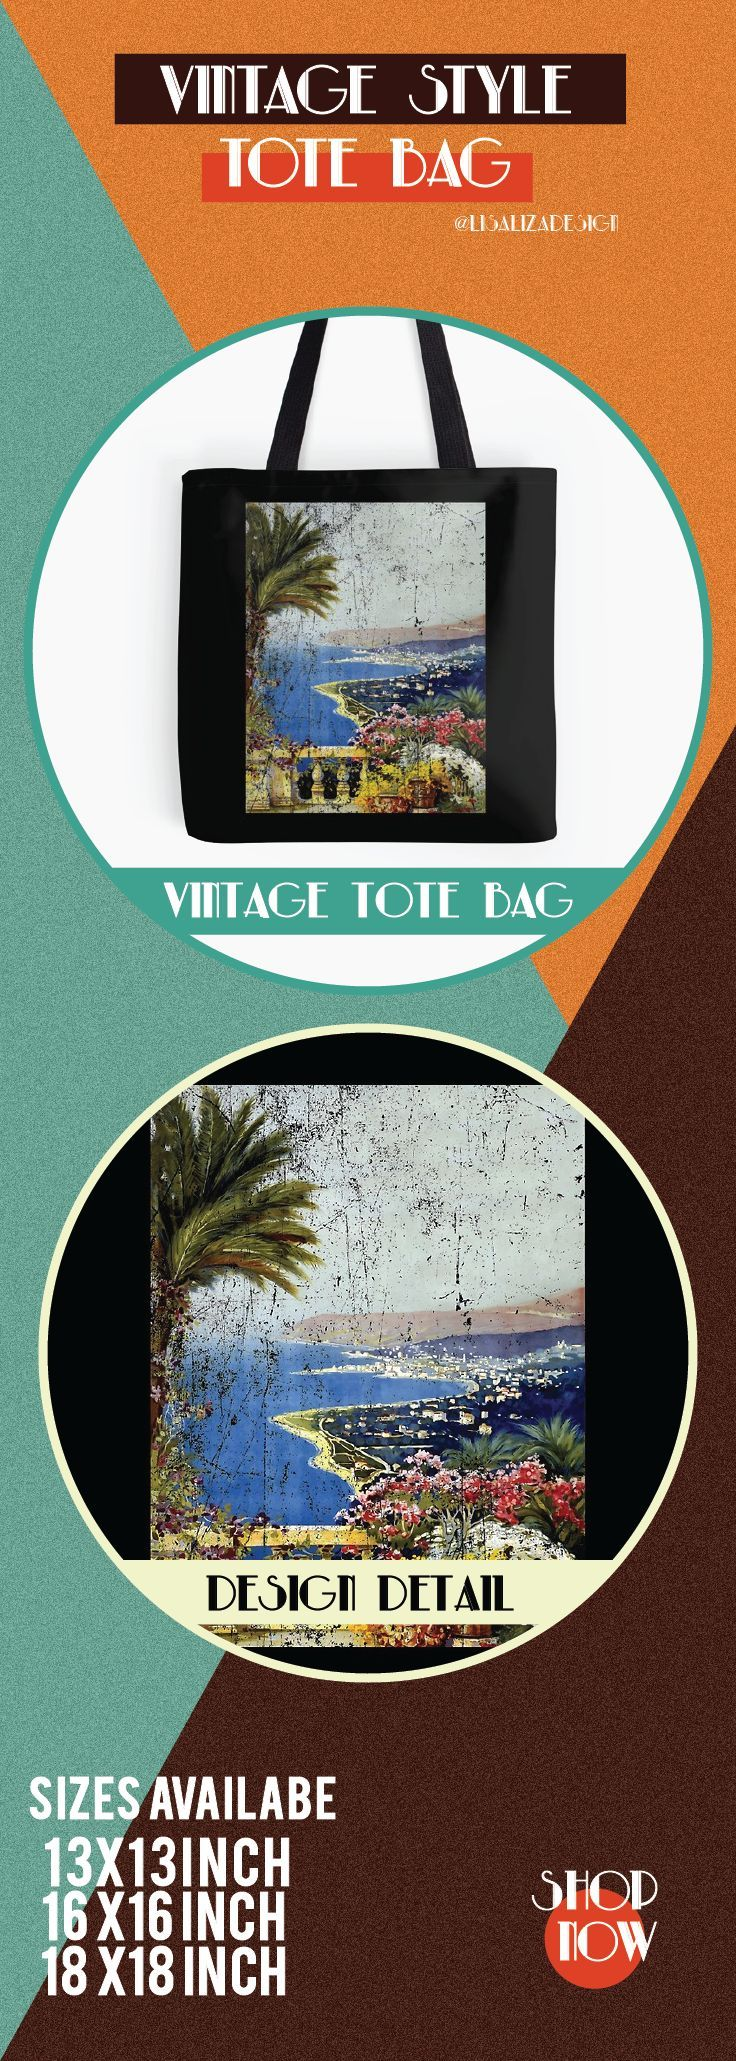 Vintage Travel Poster, Aged and Weathered - Sanremo.  ToteBags  A collection design inspired by vintage travel and advertisements posters  from the late 19th century printed on durable tote bags. 3 Sizes available.  Excellent gift ideas for vintage lovers and everyone. #vintage #hugs #holidaygift #oldies #homedecor #retro #travelposter #totebag #redbubble #teepublic #lisalizadesign #vintageposter #oldies